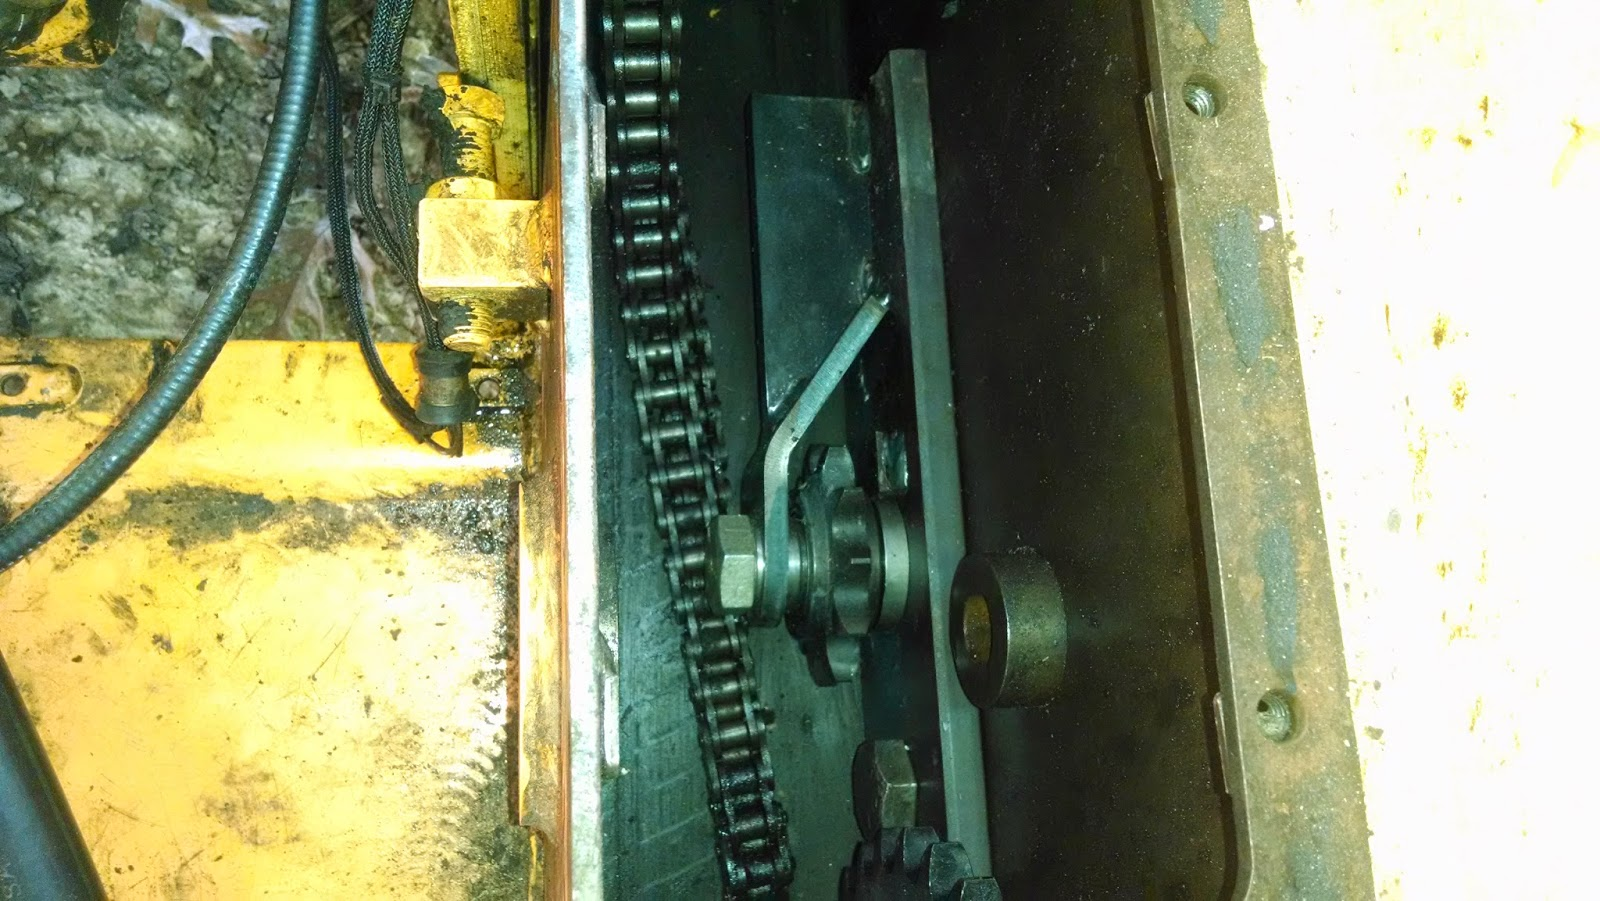 Mustang 940 Skid Loader: Bearing, Chain, and sprocket ... on